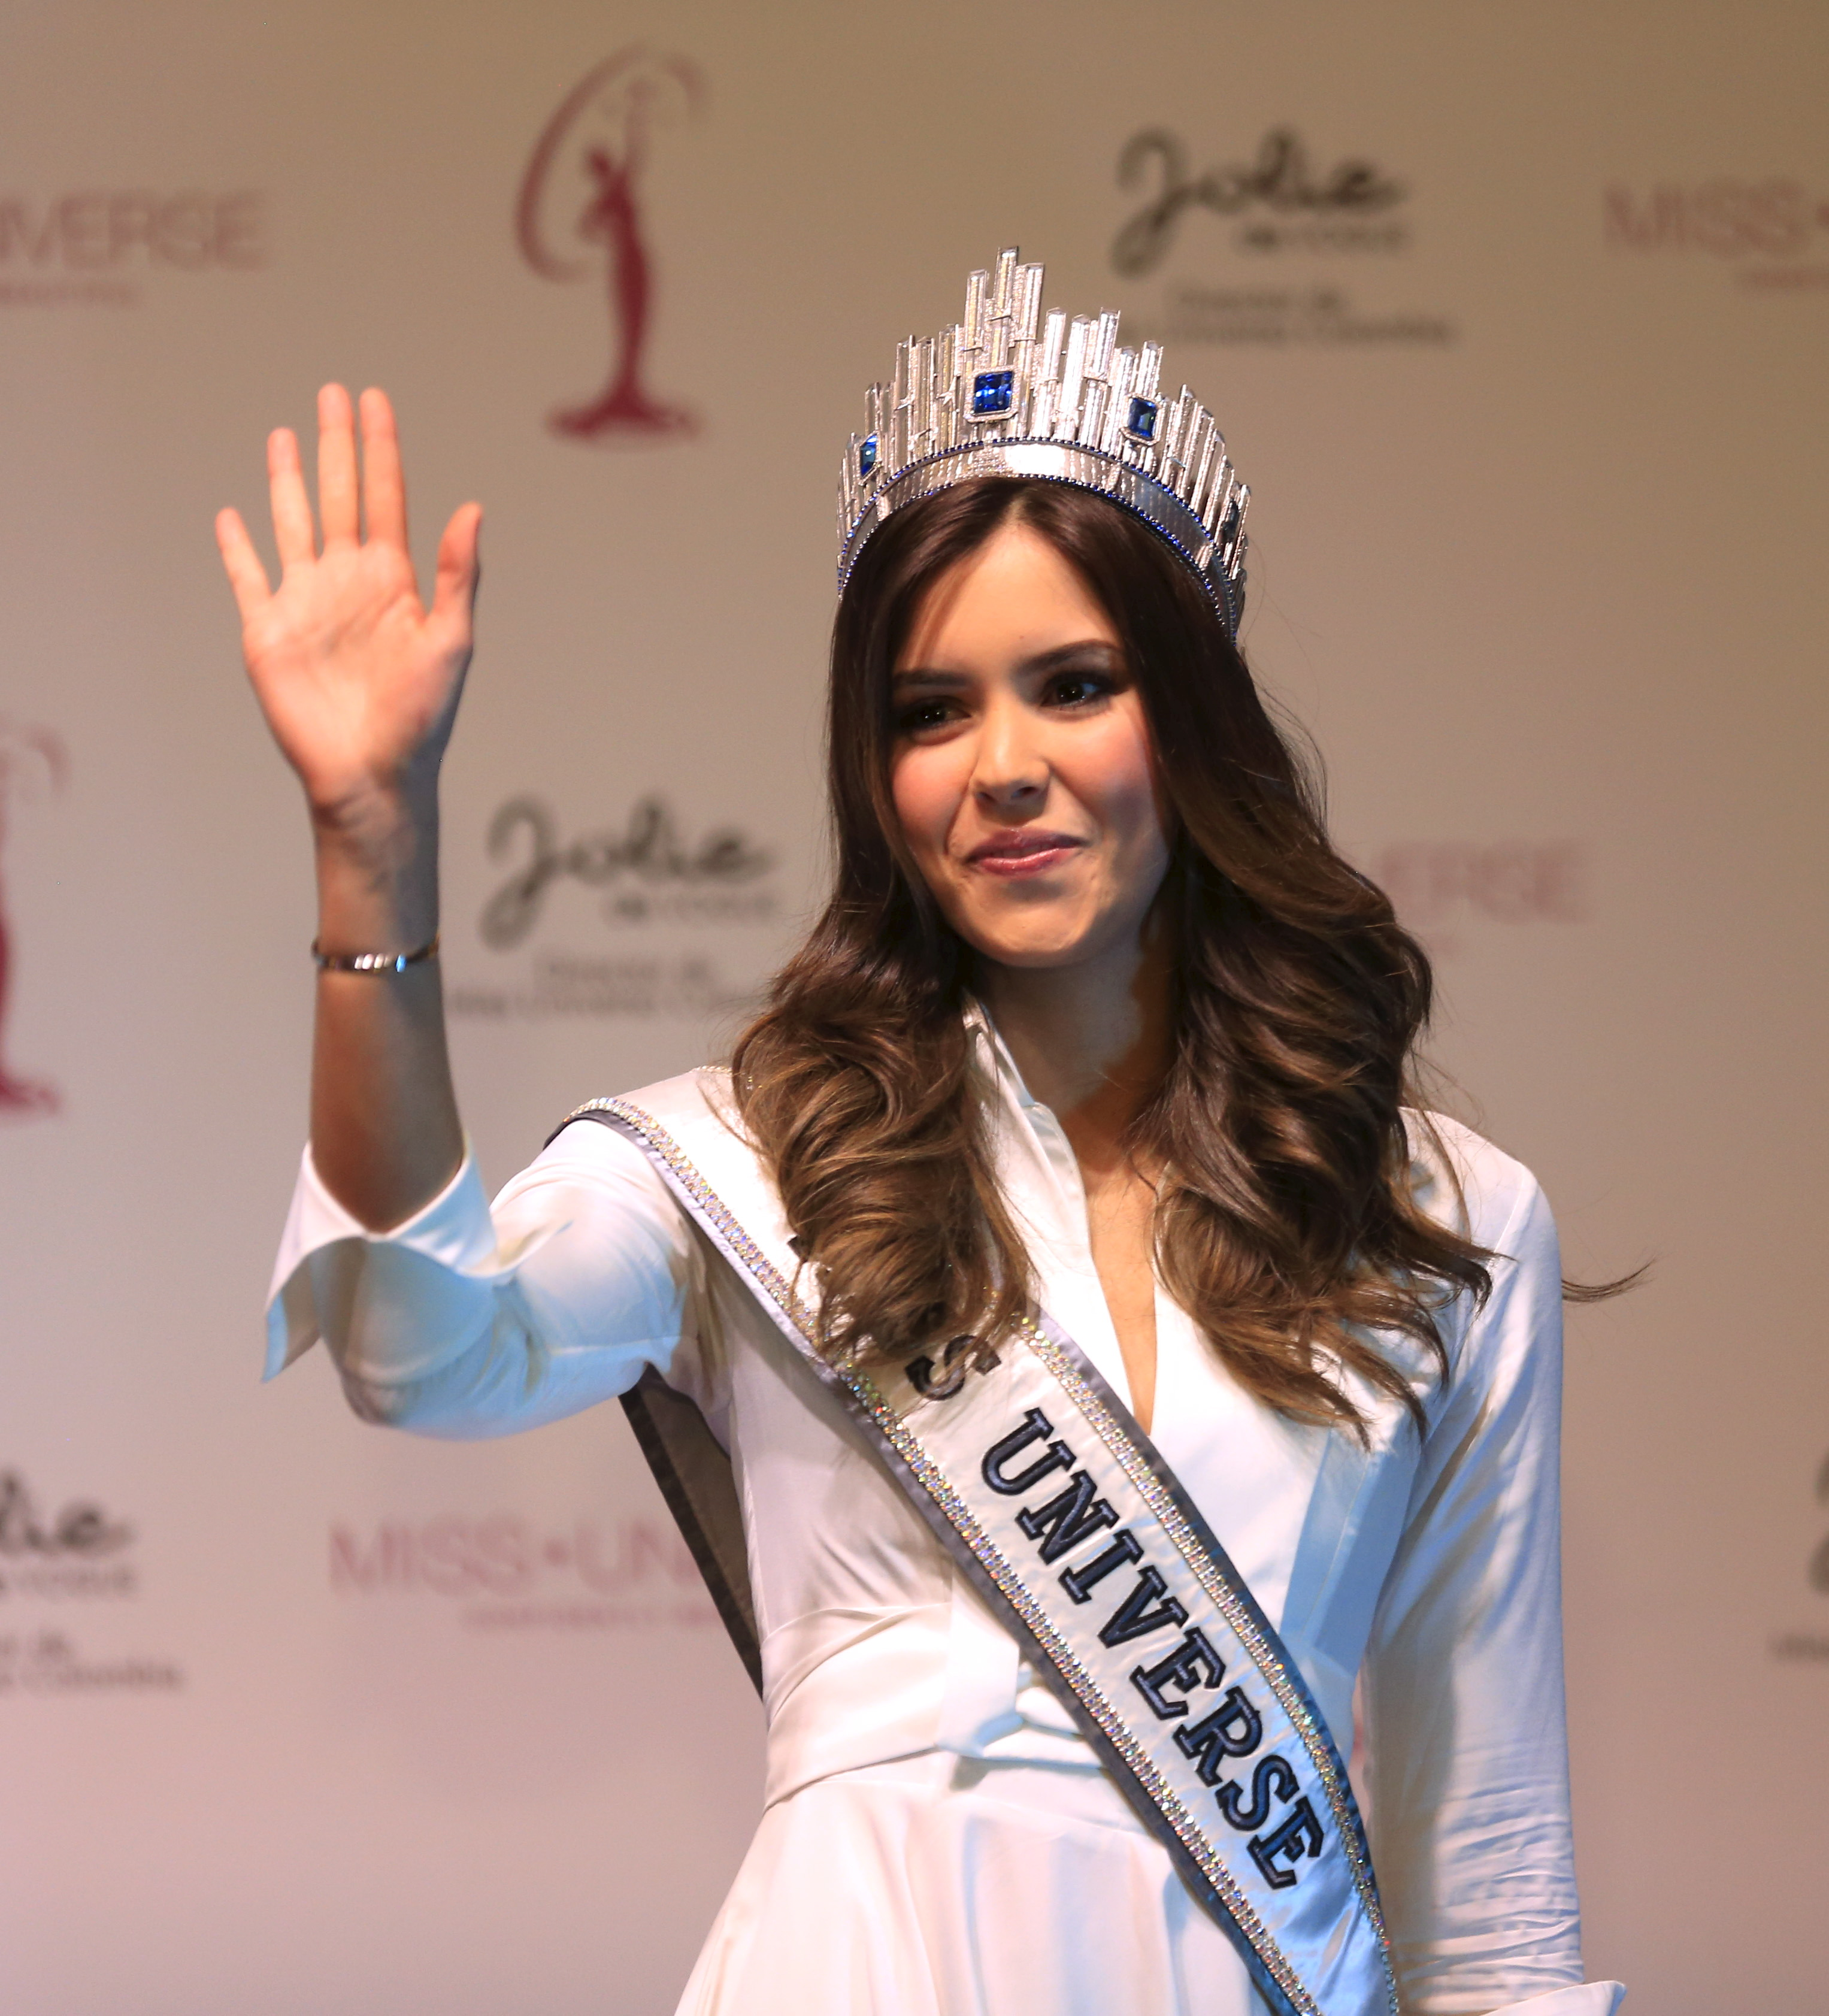 Colombia's Miss Universe Paulina Vega greets fans during a news conference in Bogota, Colombia April 27, 2015.  REUTERS/Jose Miguel Gomez   - RTX1AK08